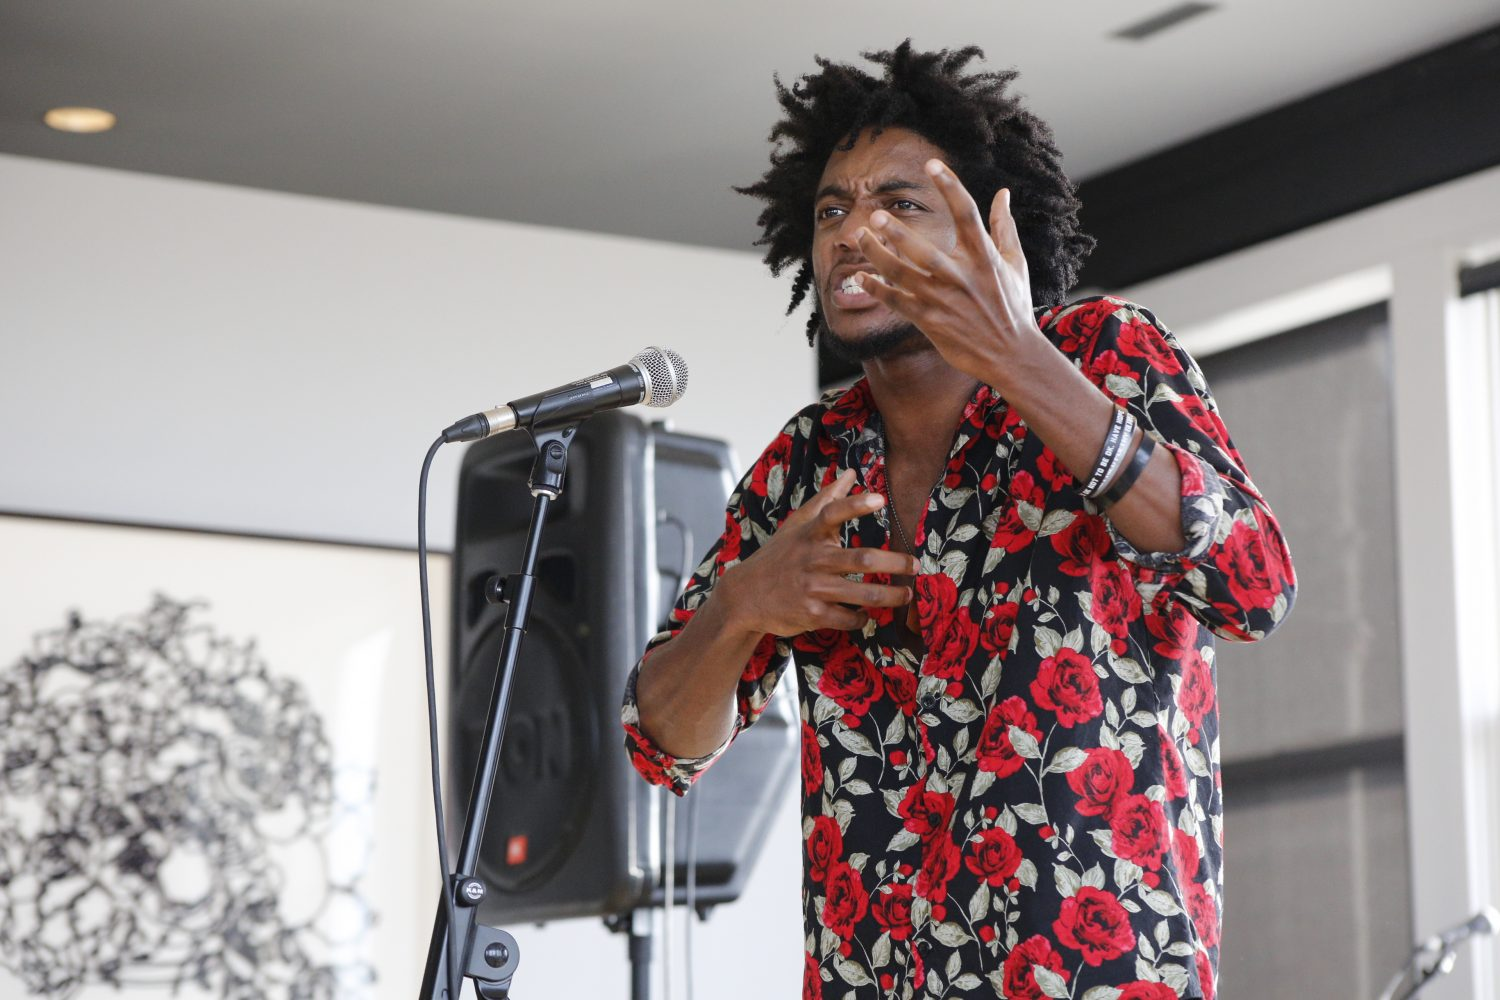 Rustbelt Poetry Slam draws hopefuls from around U.S.